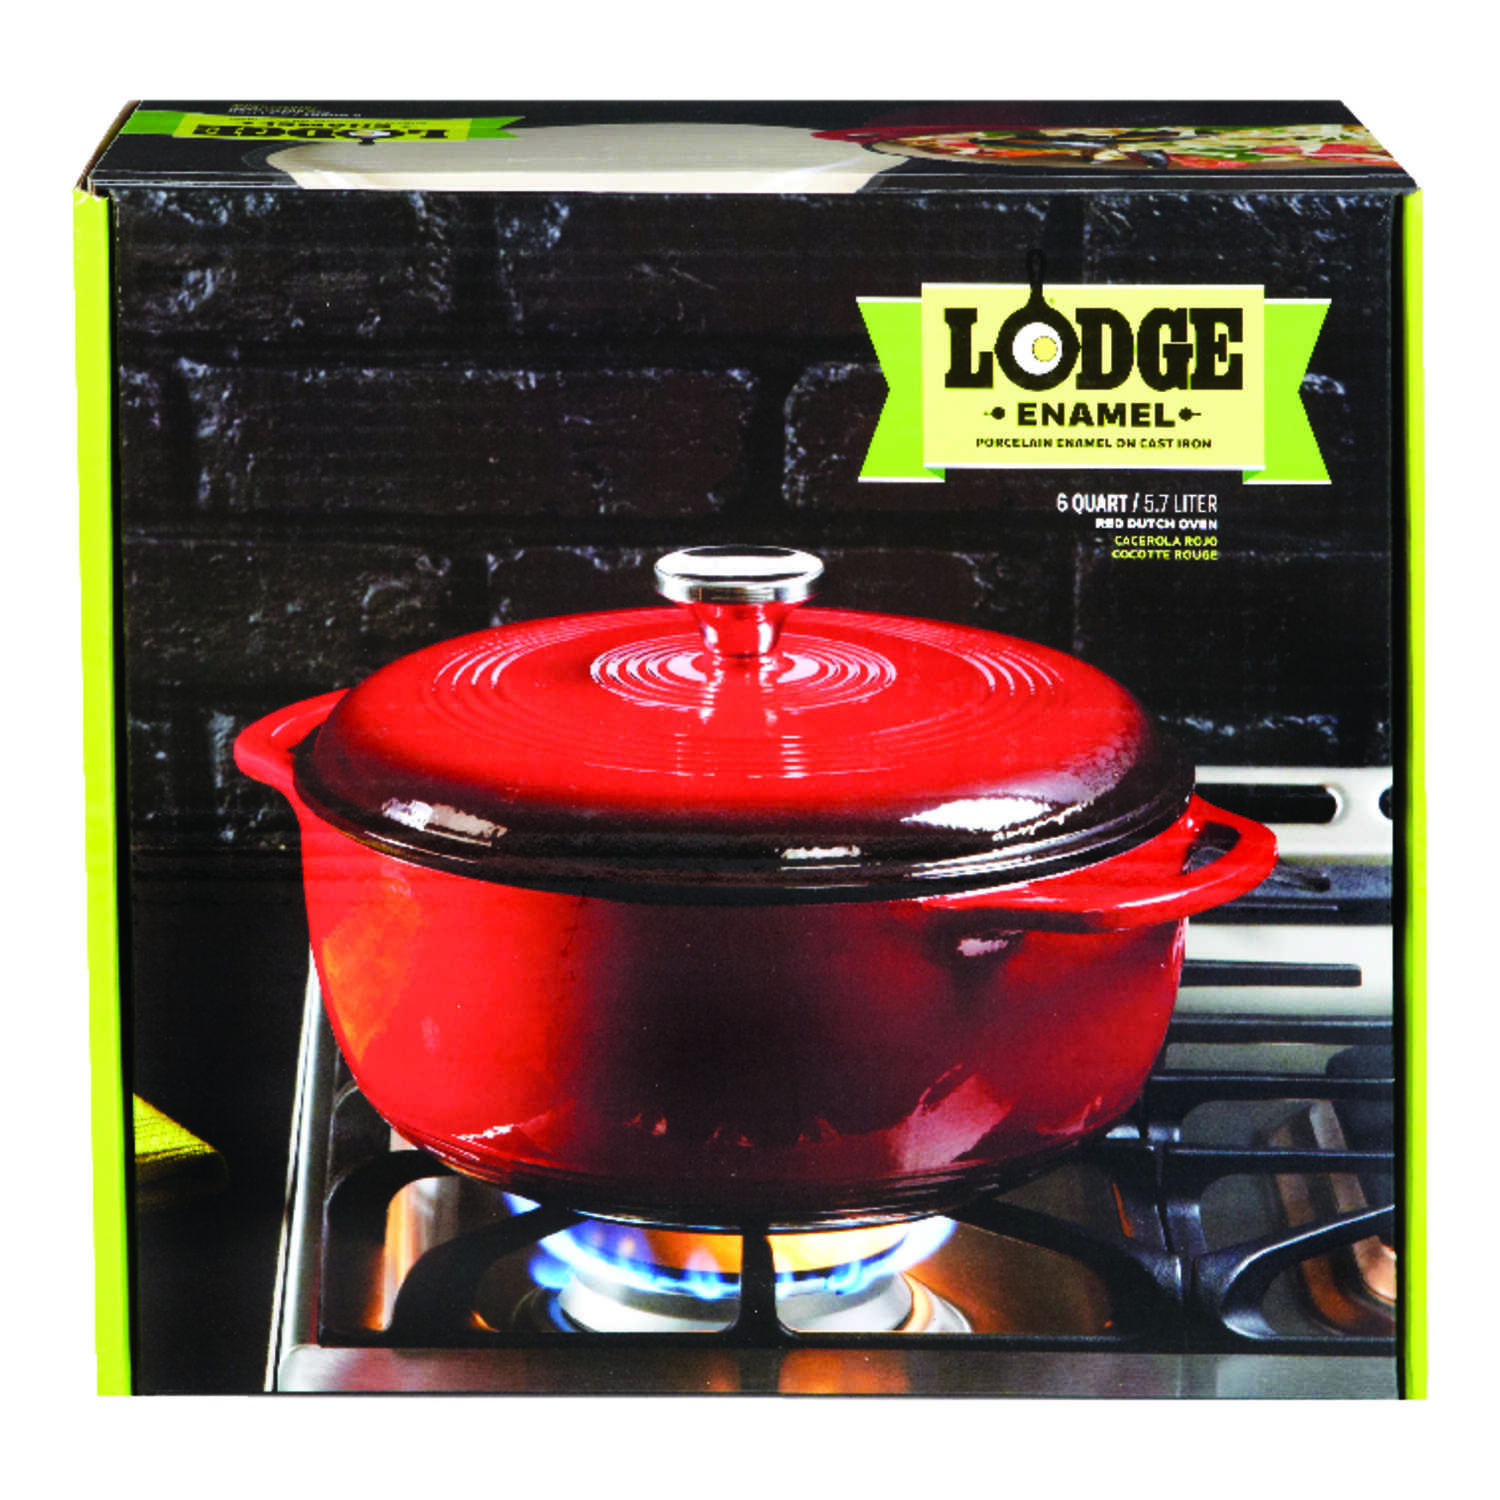 Lodge  Porcelain Enamel  Dutch Oven  10.5 in. 6 Quarts  Red